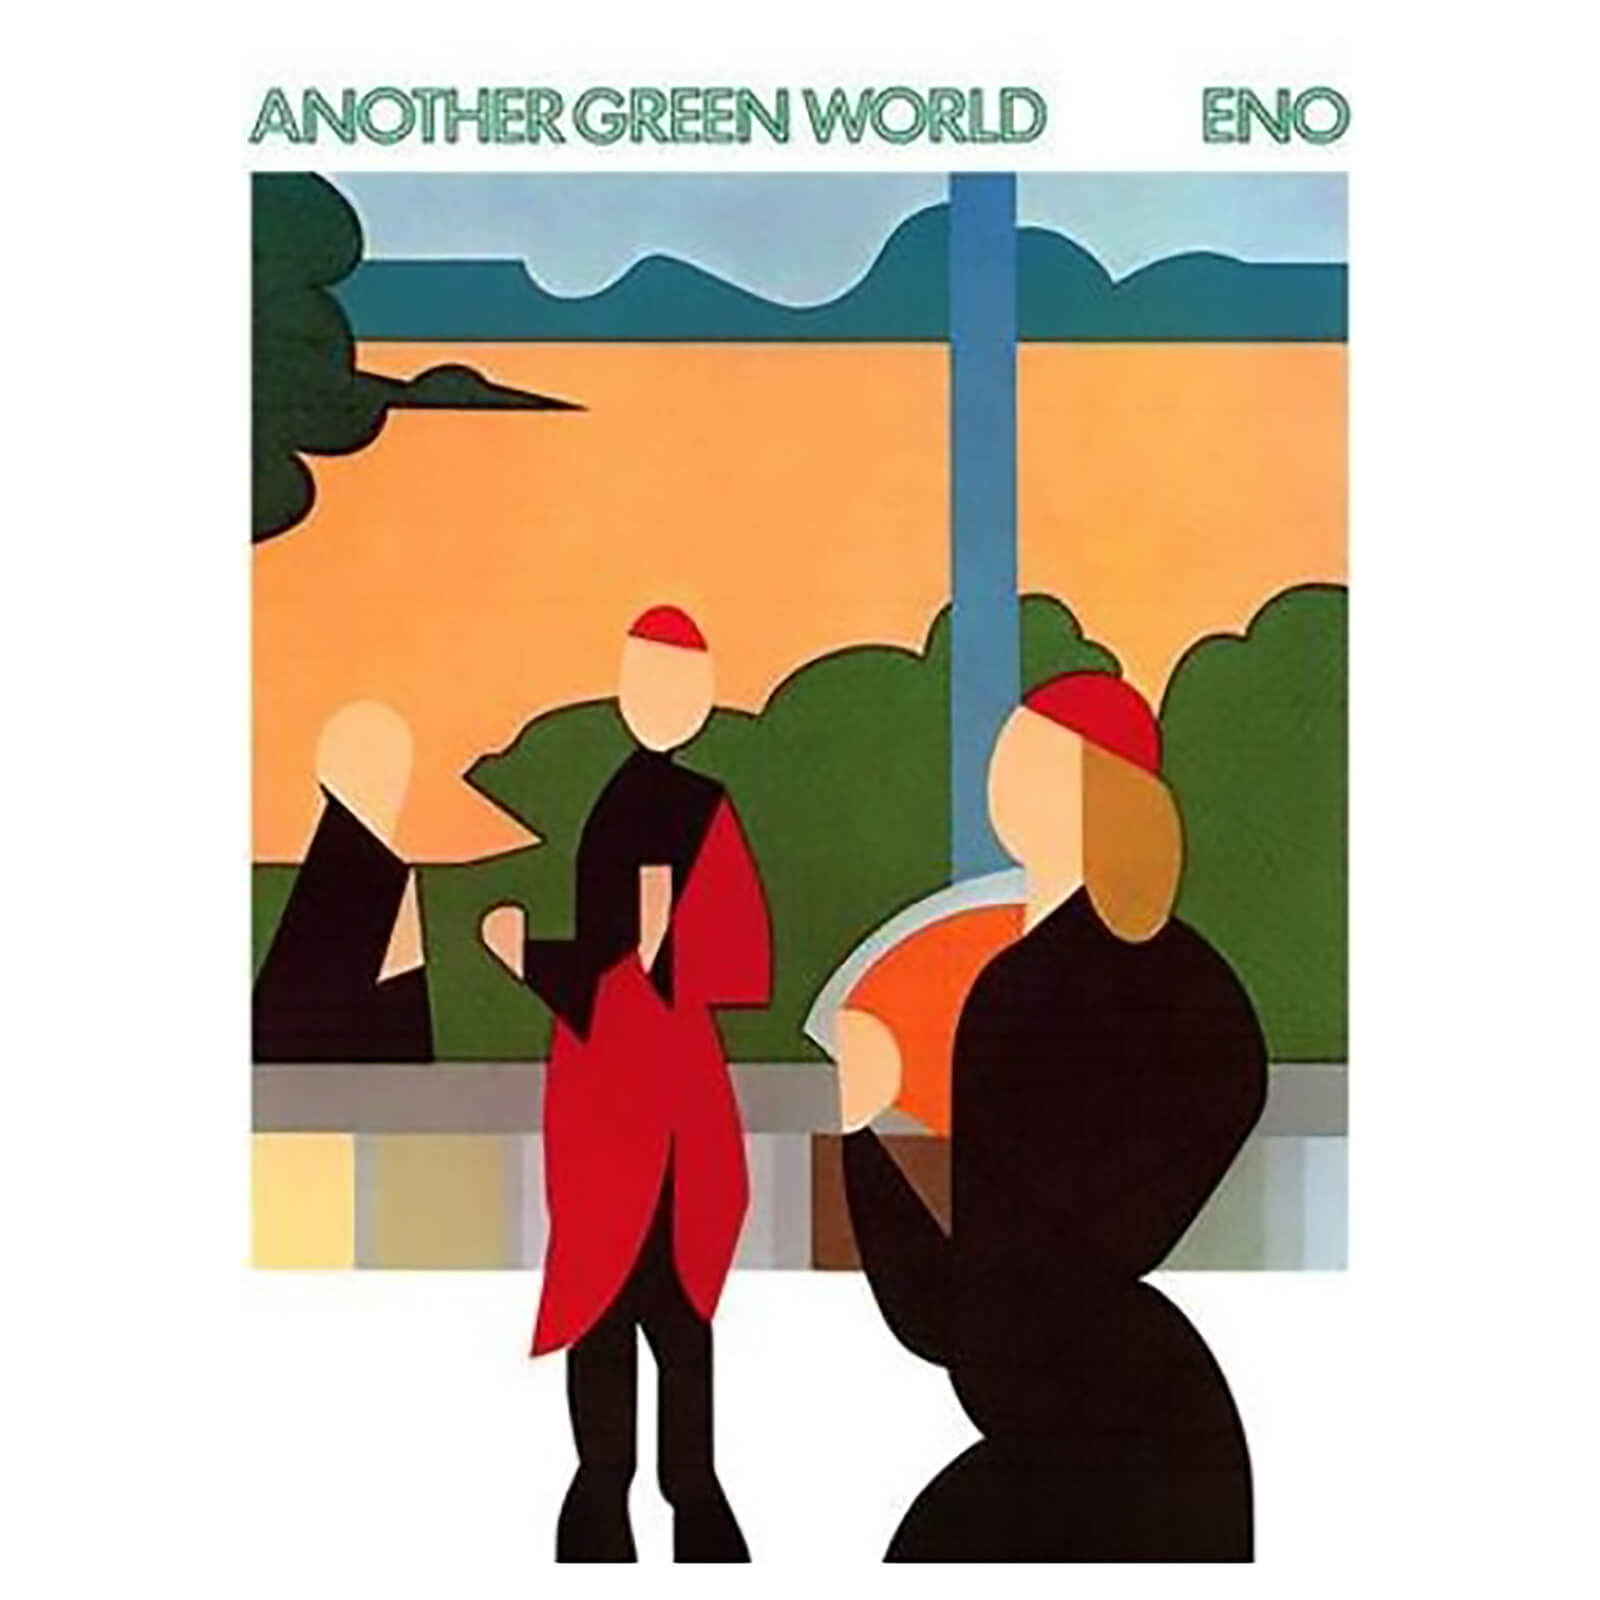 Brian Eno - Another Green World - Vinyl